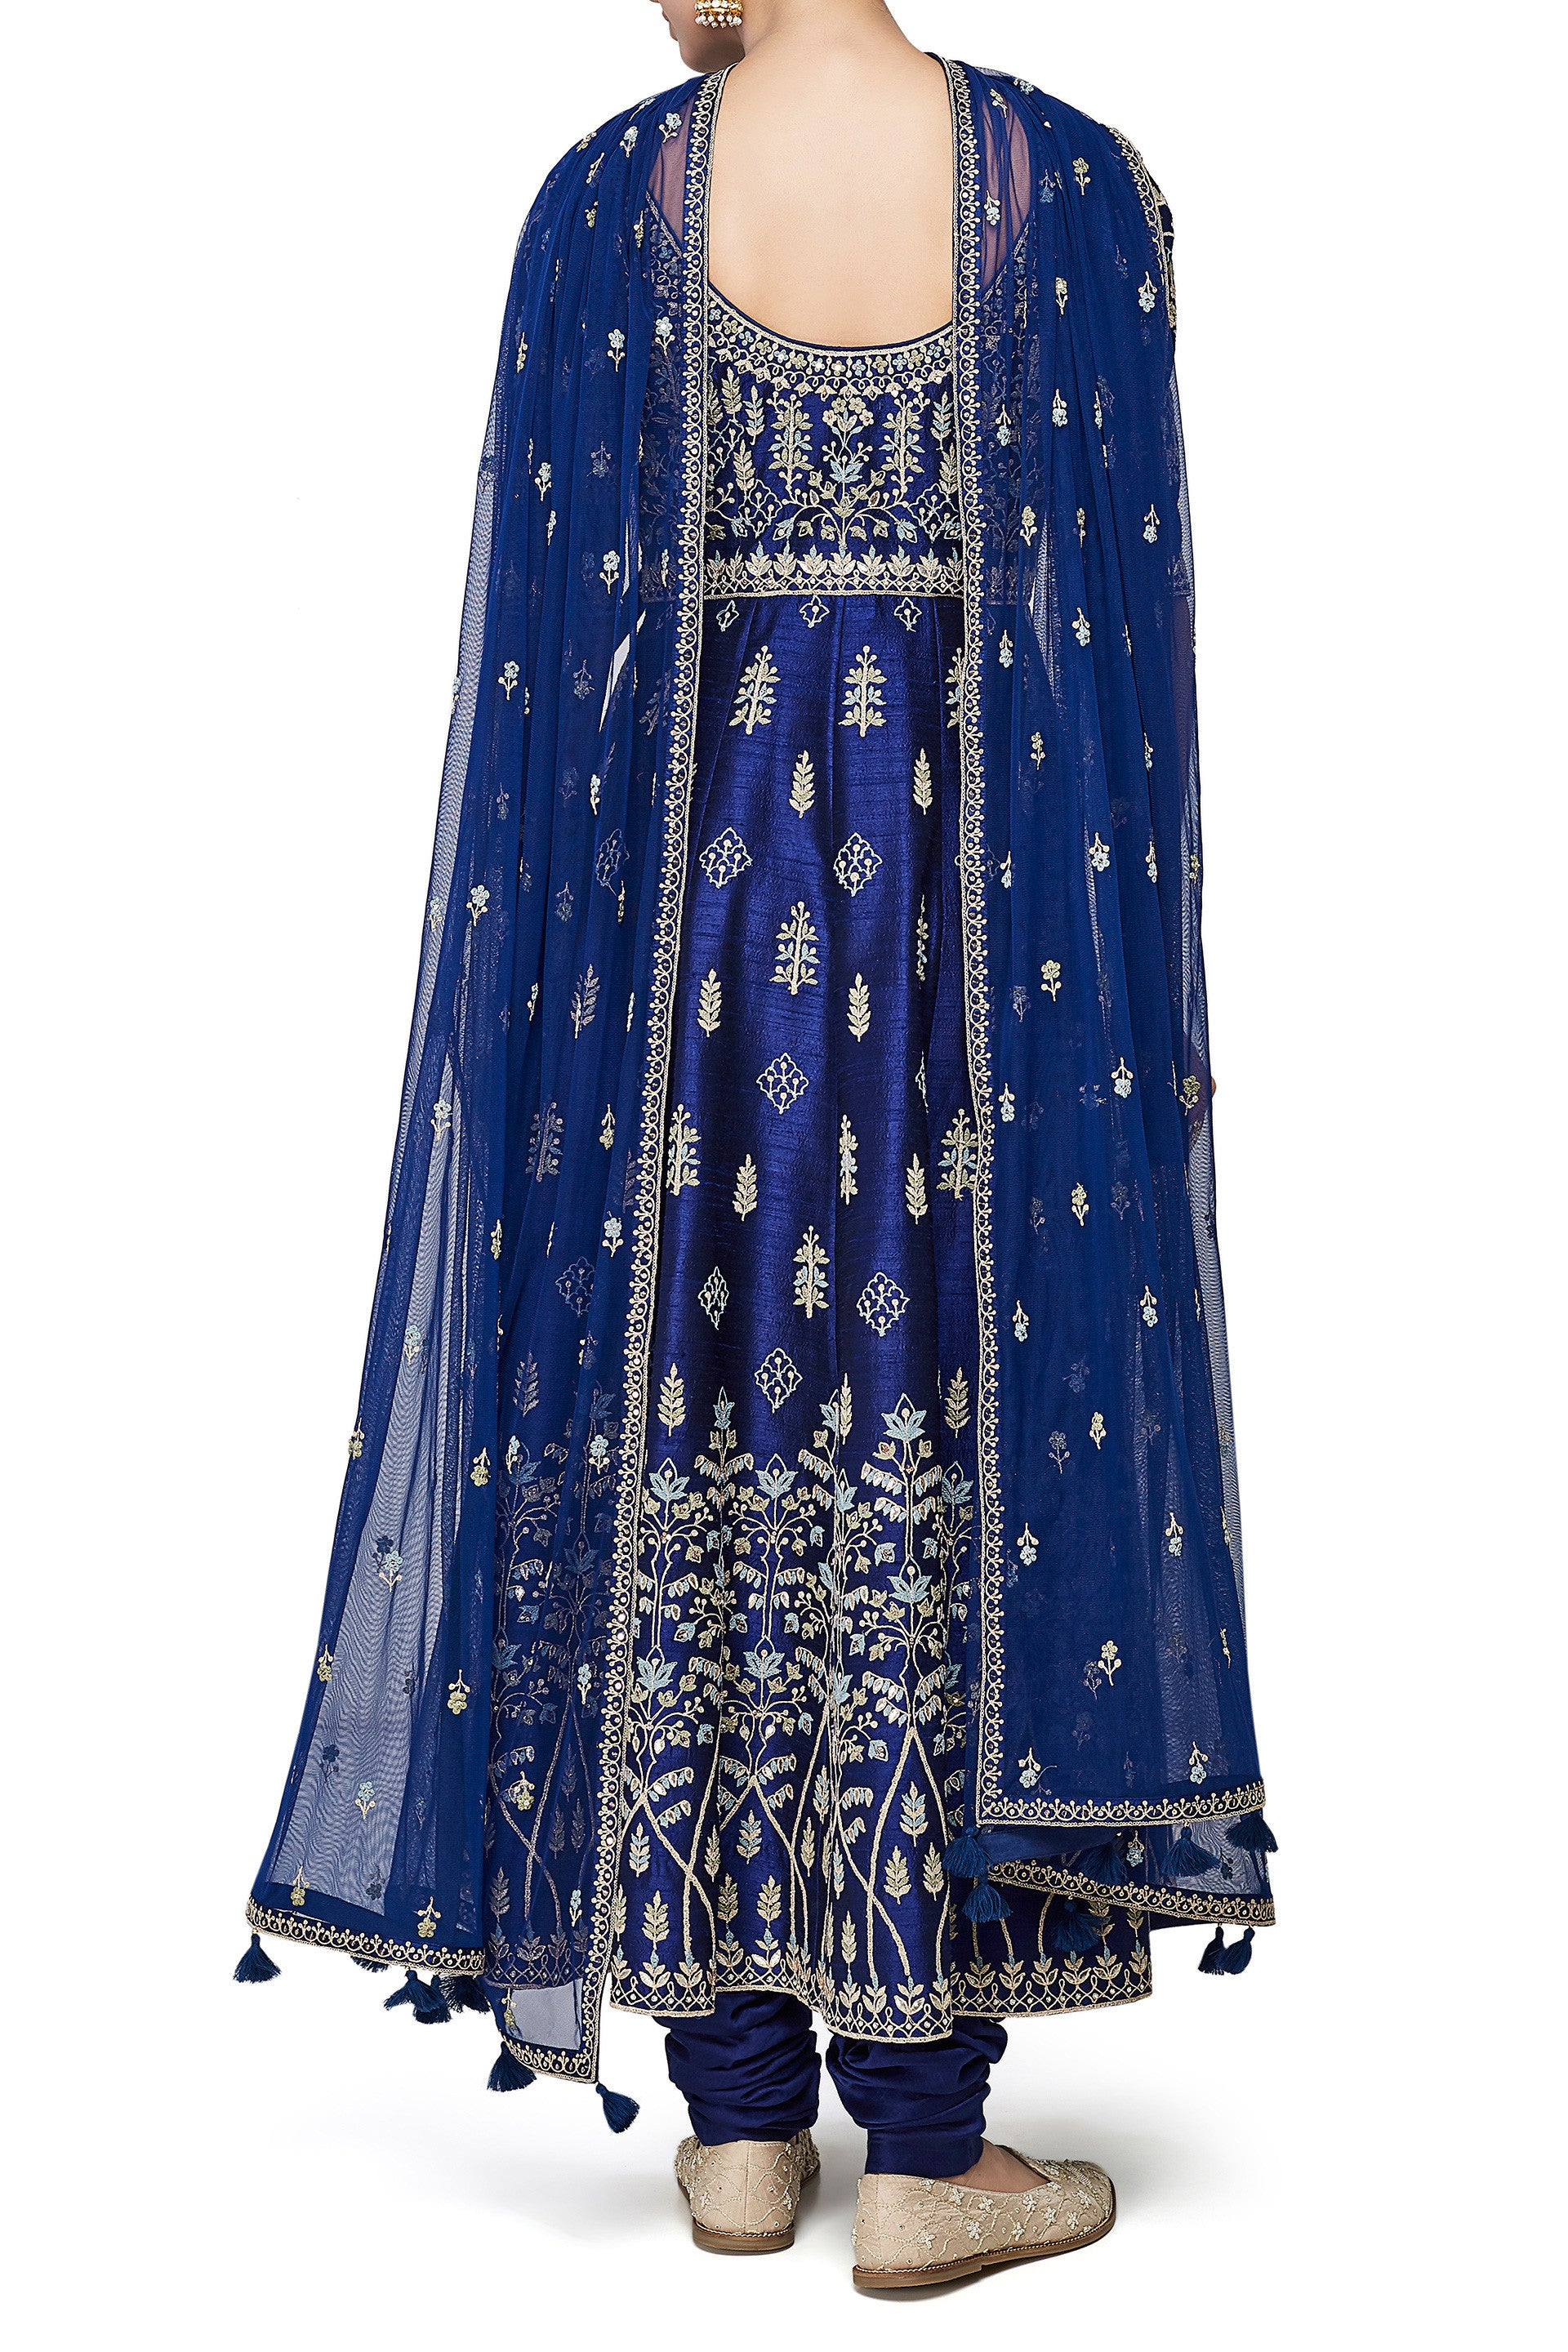 Navy Blue Color Anarkali in Dupion Silk